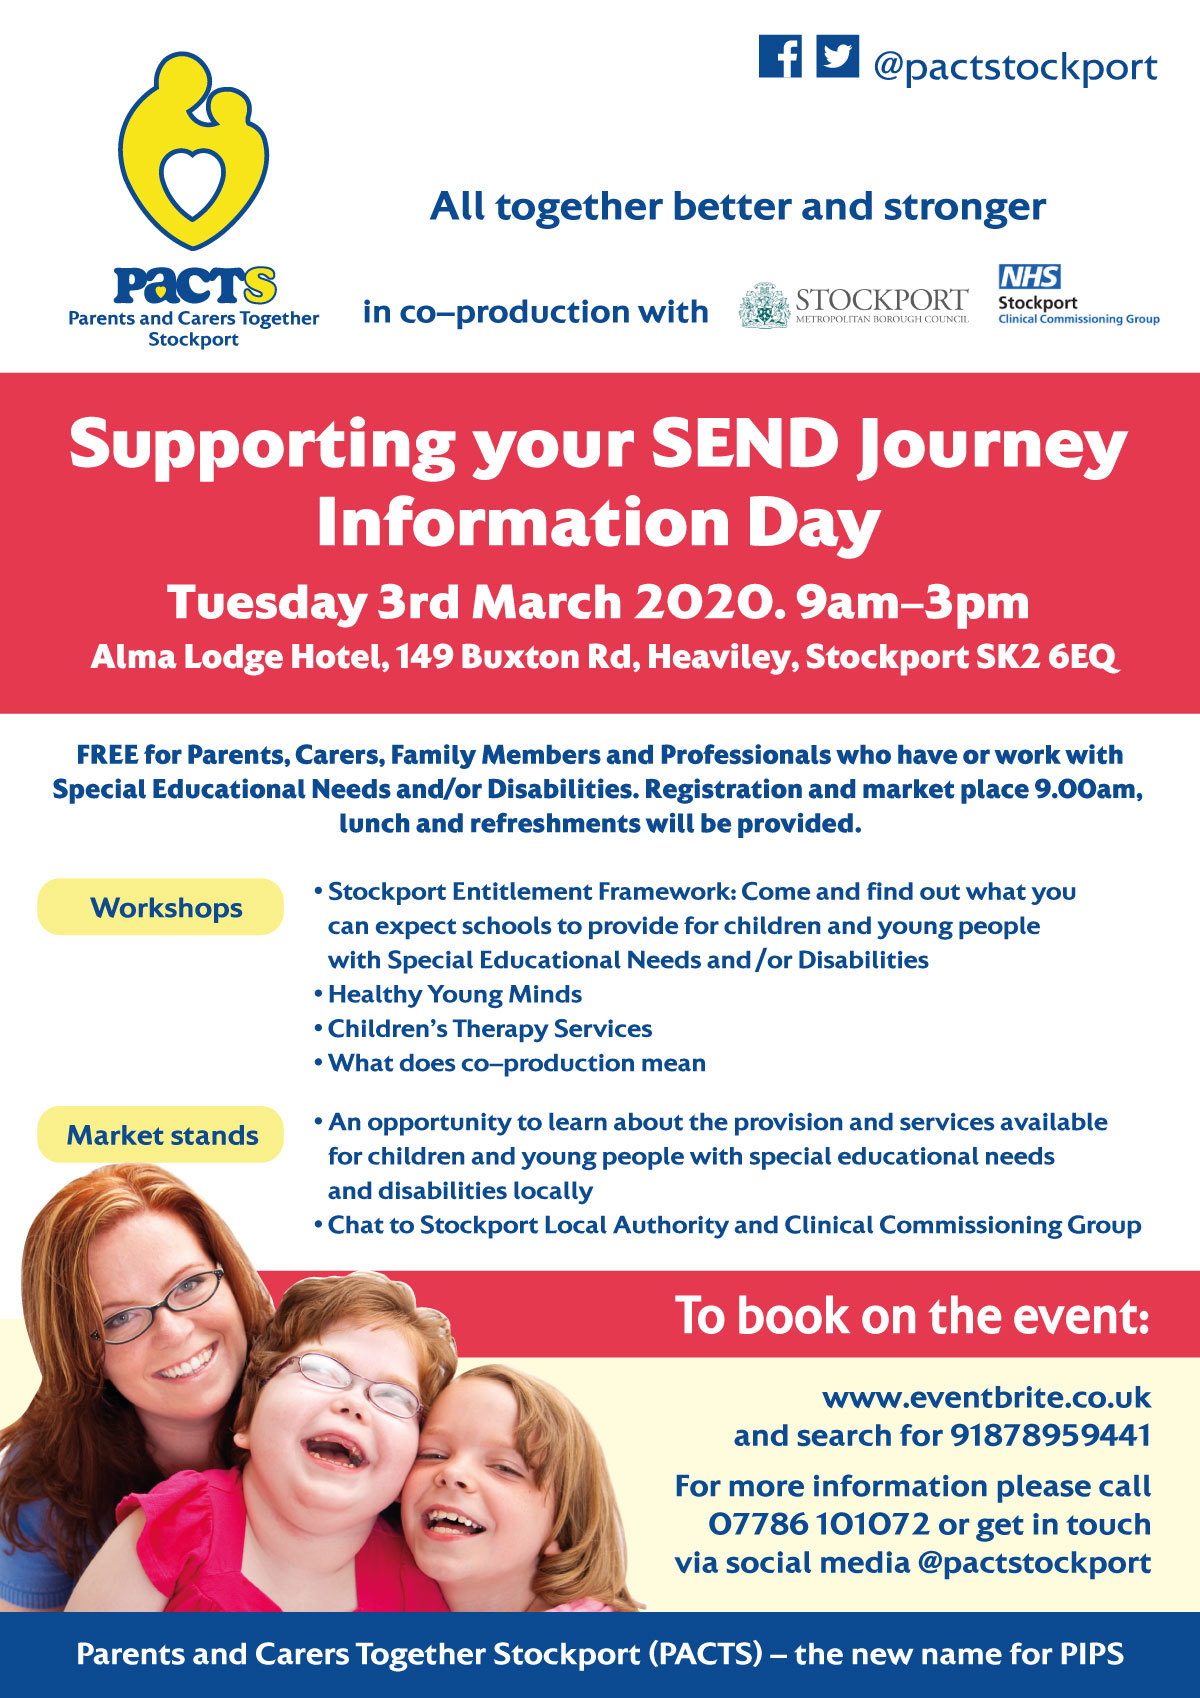 PACTS Information Day